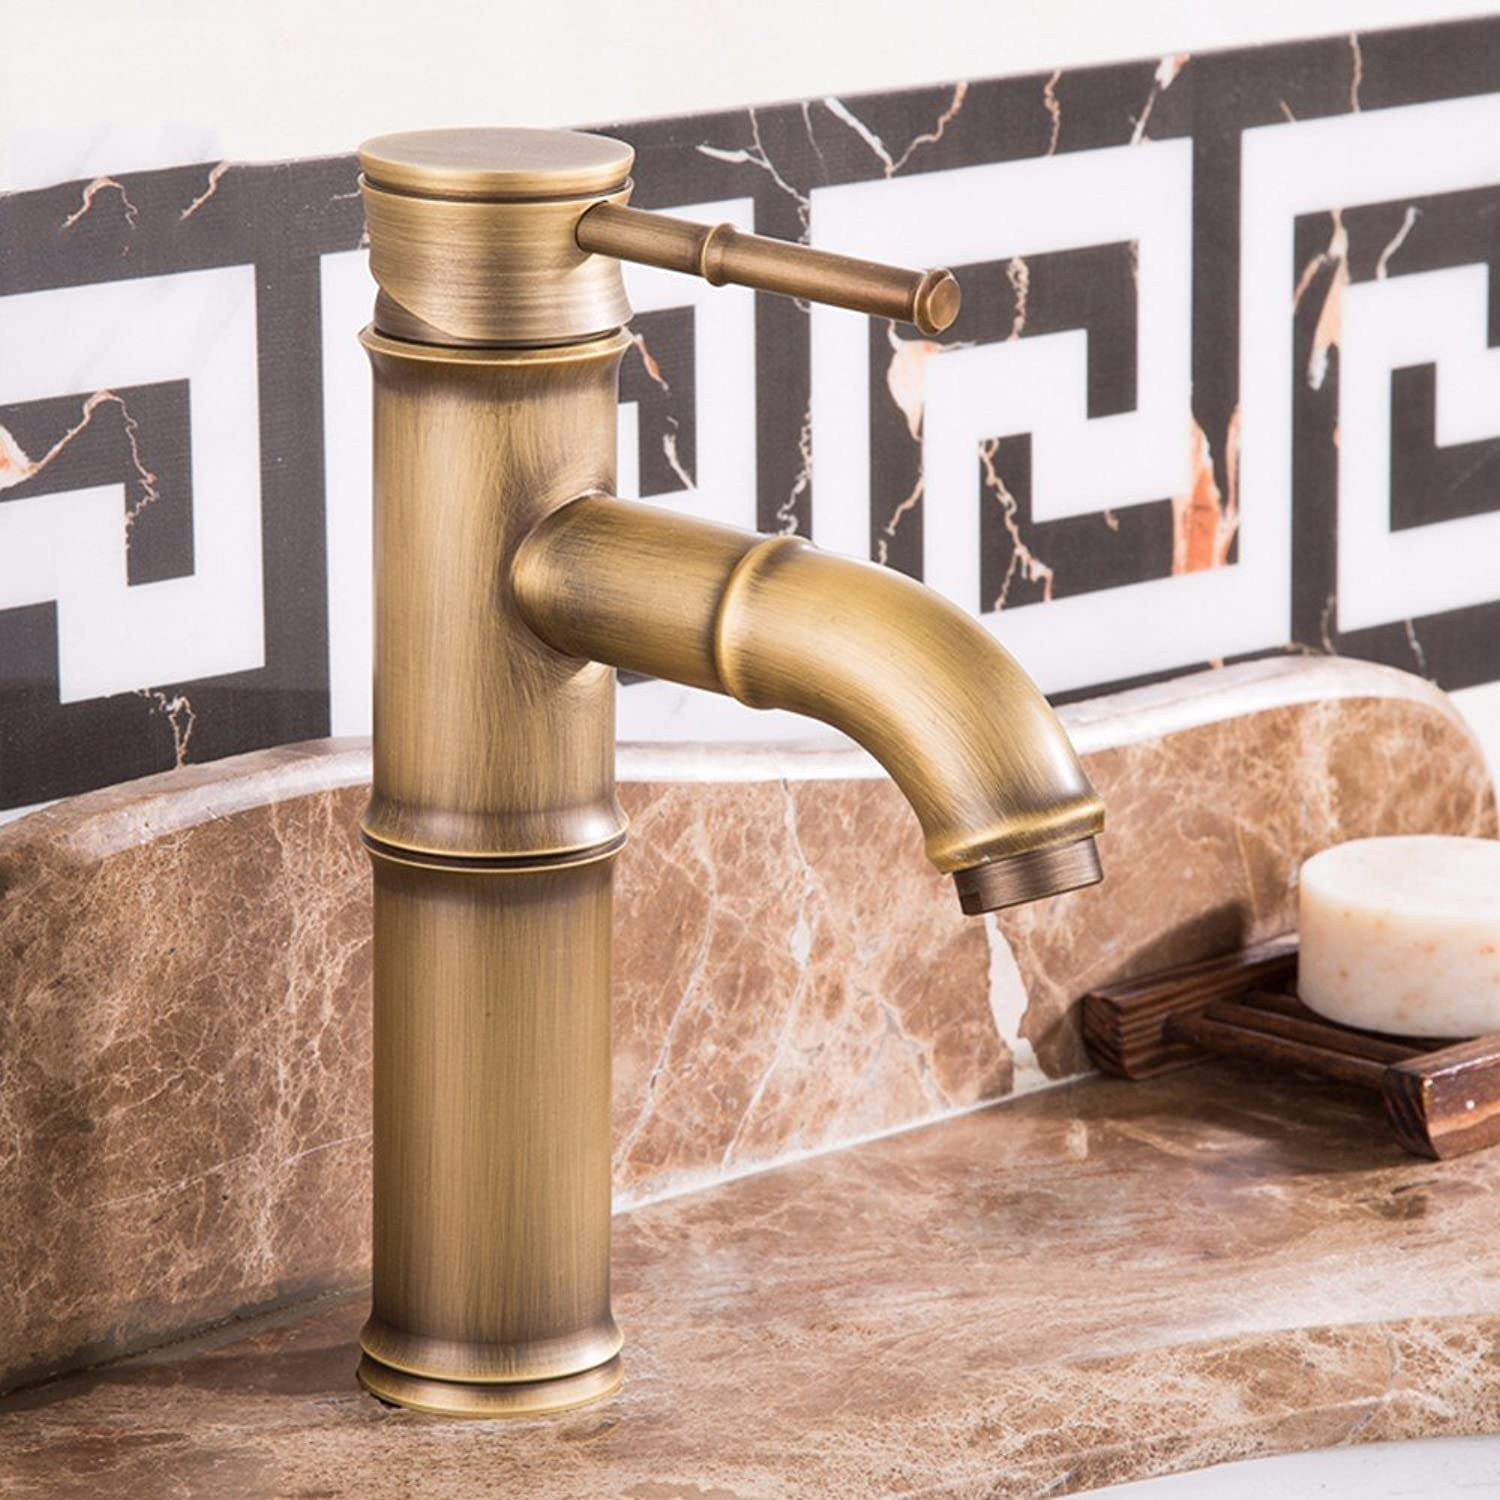 Hlluya Professional Sink Mixer Tap Kitchen Faucet Copper basin, redation, cold and hot, Single Hole Sink mixer 3